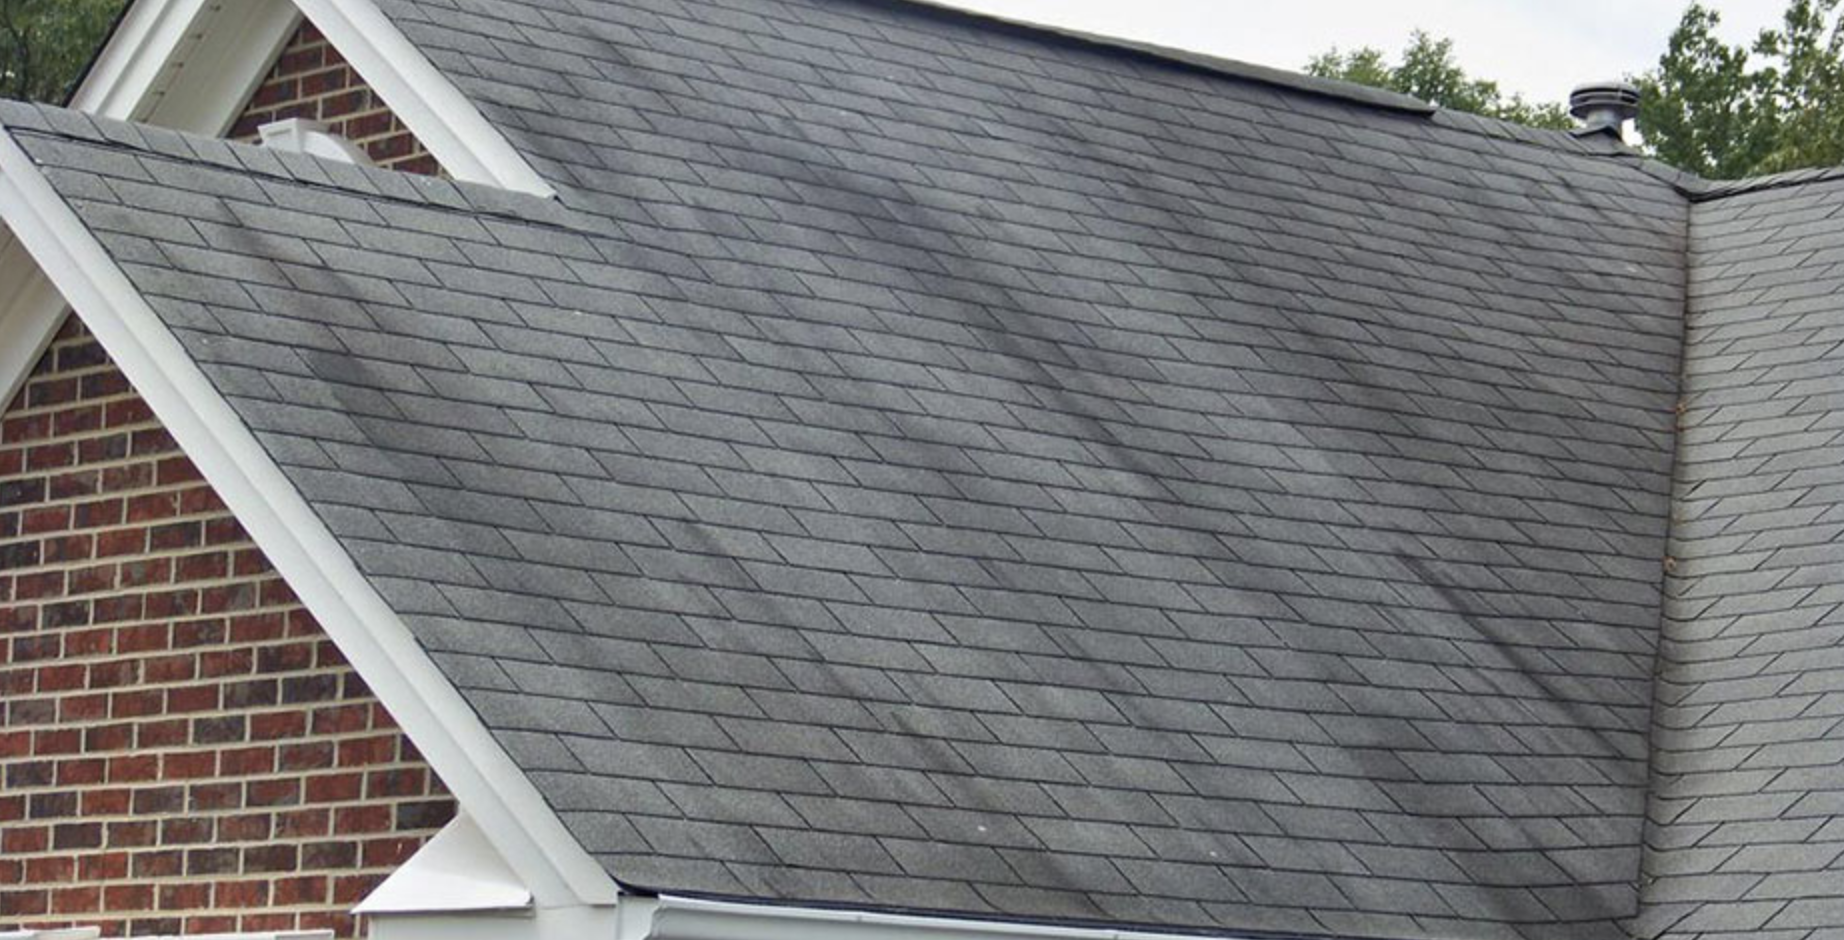 The Reason You Have Those Ugly Black Streaks On Your Roof